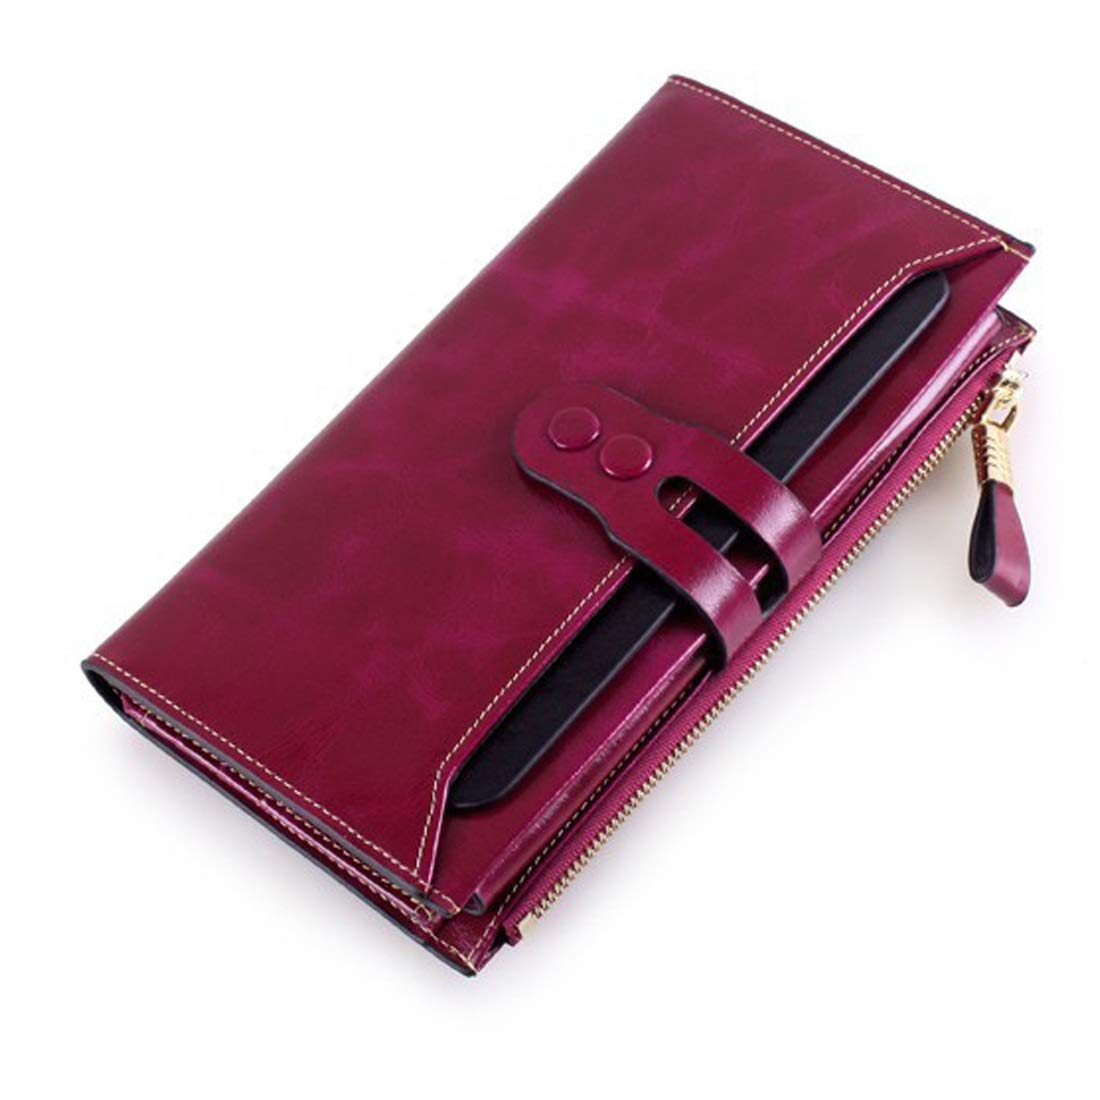 Professional Bag Long Wallet Unisex Zipper Wallet Fashion Large Capacity Folding Wallet Leather Cowhide Multicolor Available Select. Outdoor Travel Essentials (color   Red)